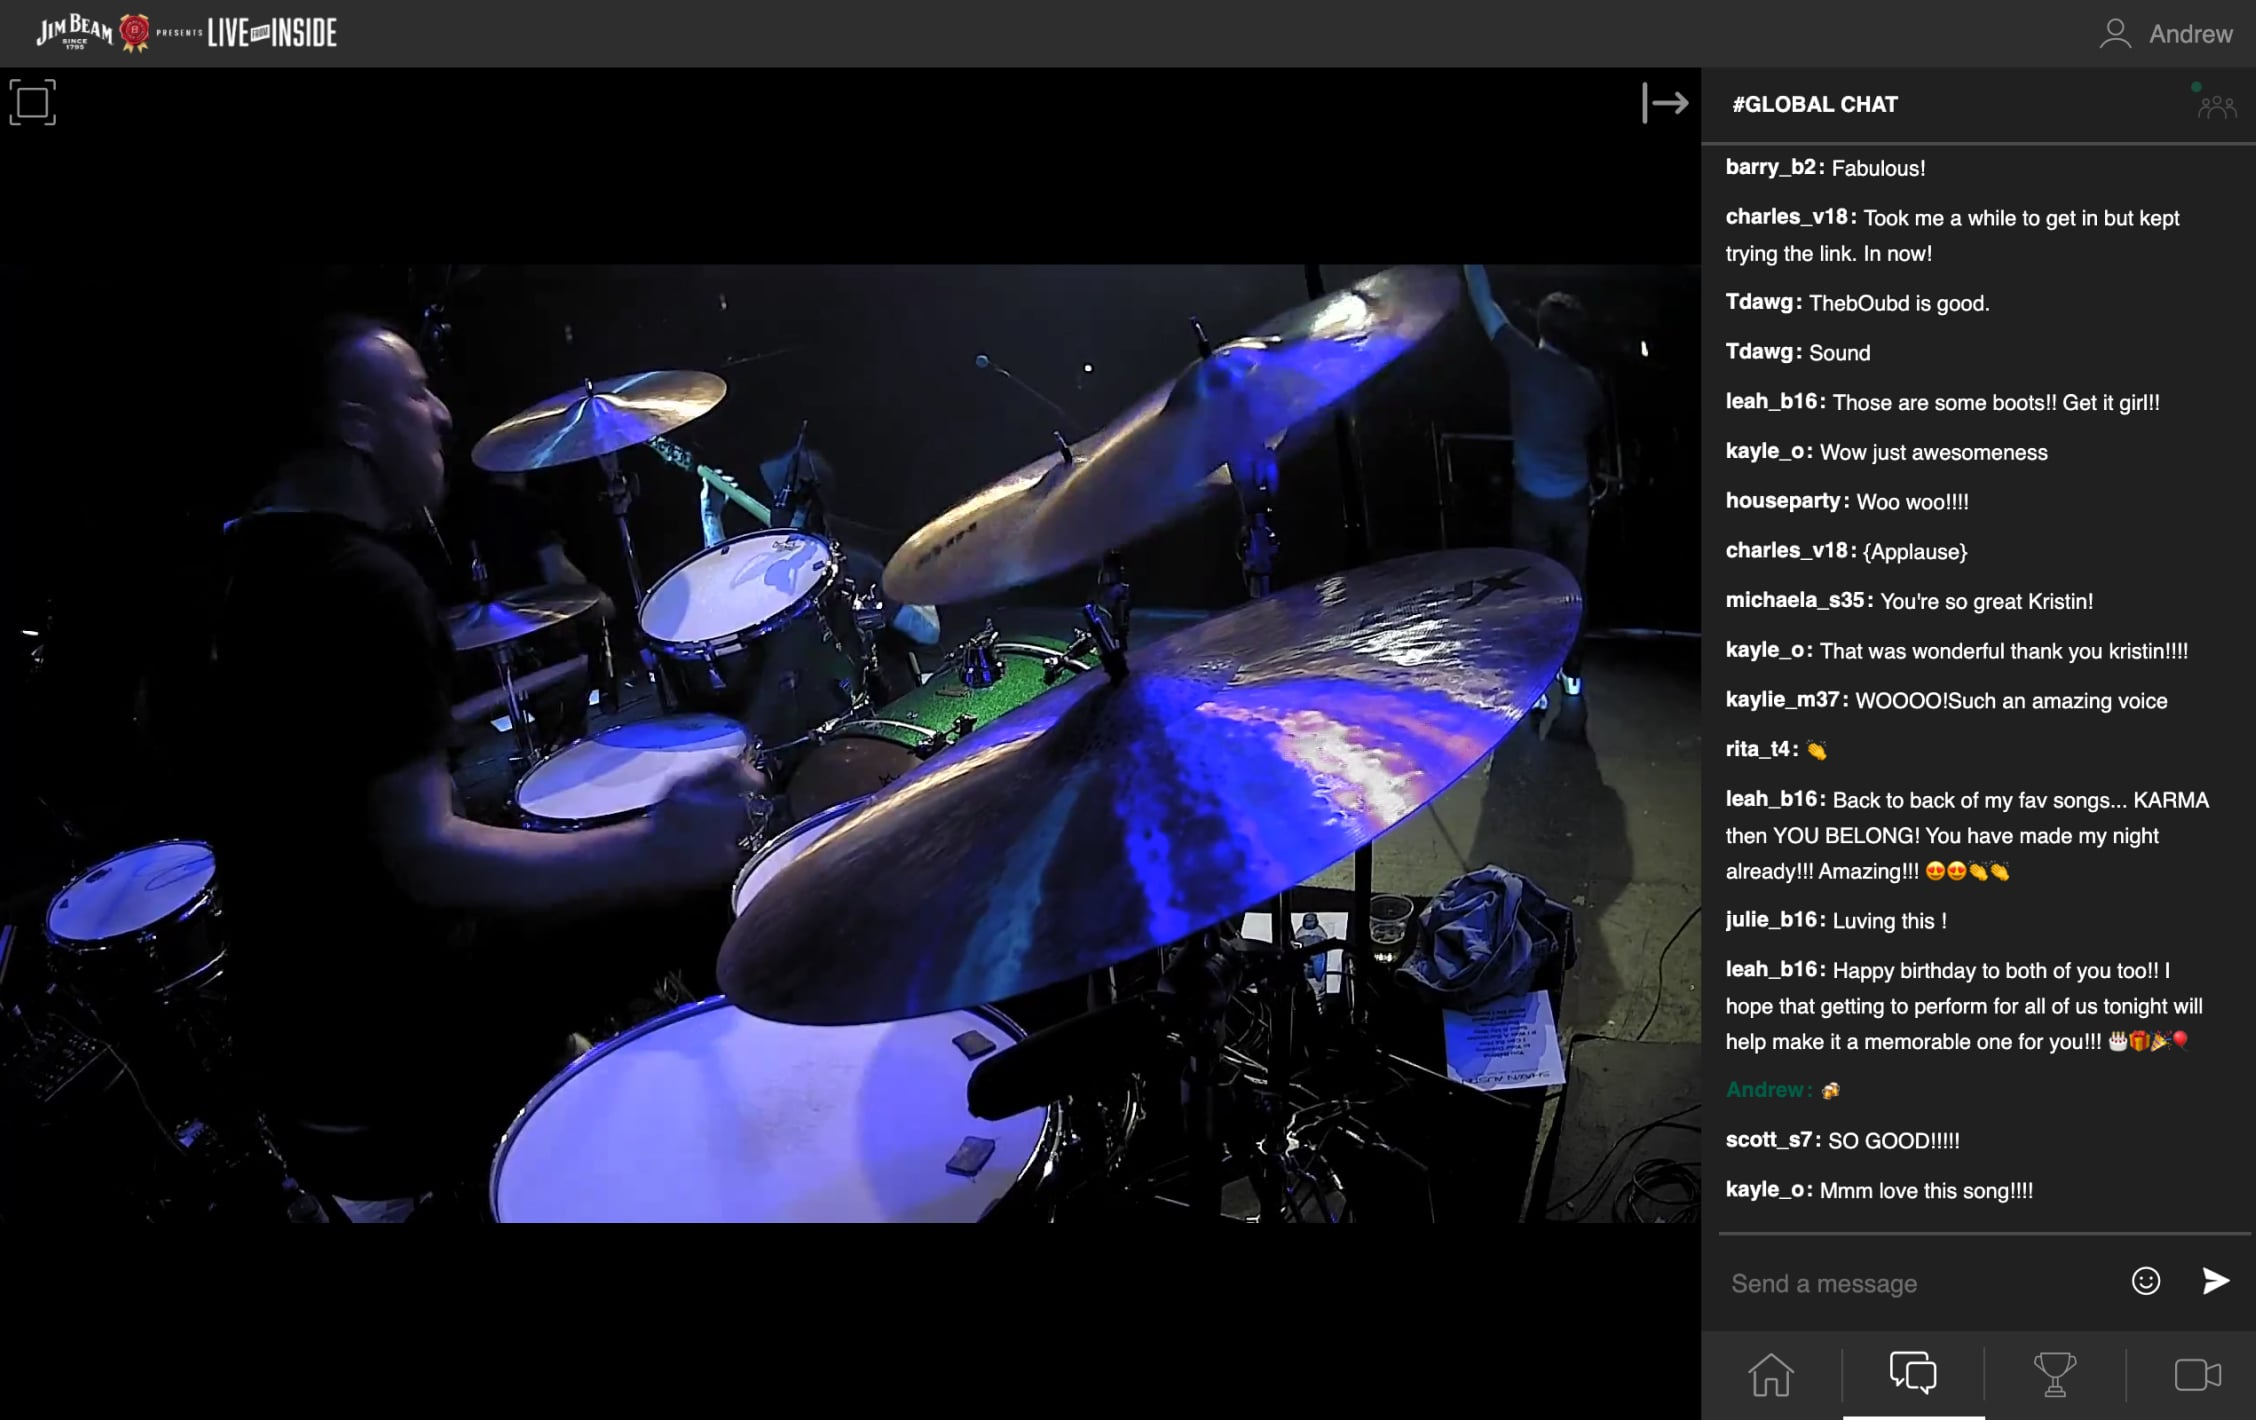 Deliver second-screen experiences using interactive livestream